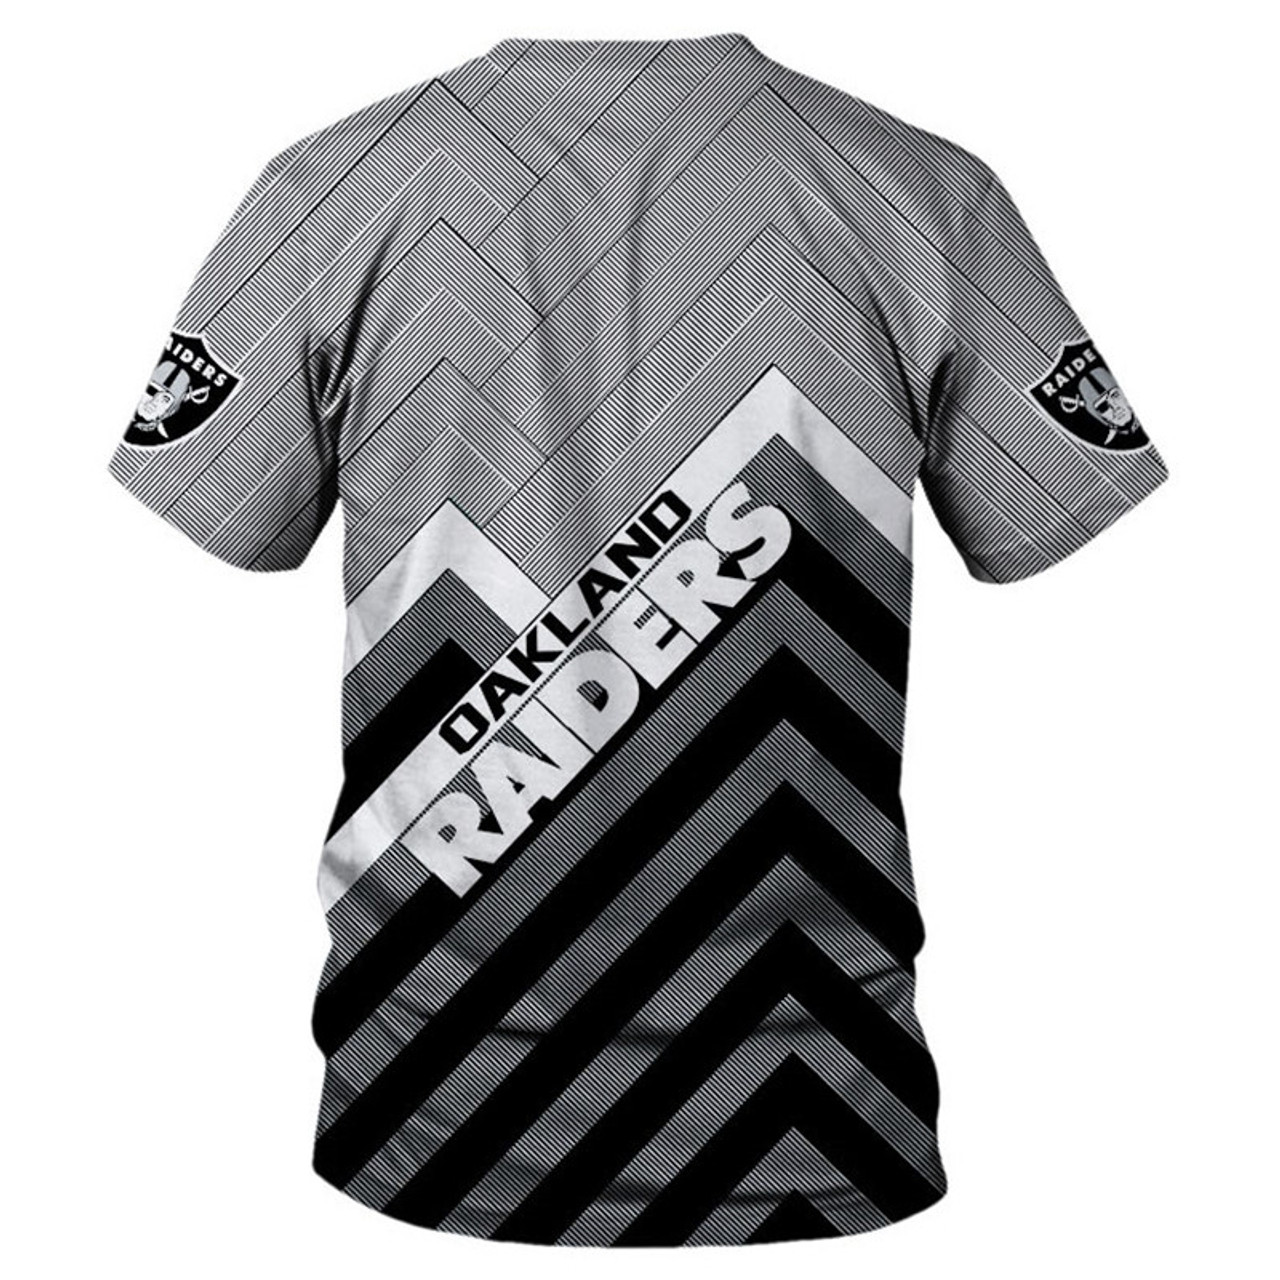 **(OFFICIAL-N.F.L.LOS-OAKLAND-RAIDERS-TEAM-TEES/NICE-3D-CUSTOM-RAIDERS-LOGOS & OFFICIAL-RAIDERS-CLASSIC-TEAM-COLORS/NICE-3D-DETAILED-GRAPHIC-PRINTED-DOUBLE-SIDED/ALL-OVER-ENTIRE-TEE-SHIRT-PRINTED-DESIGN/TRENDY-PREMIUM-N.F.L.OAKLAND-RAIDERS-TEES)**